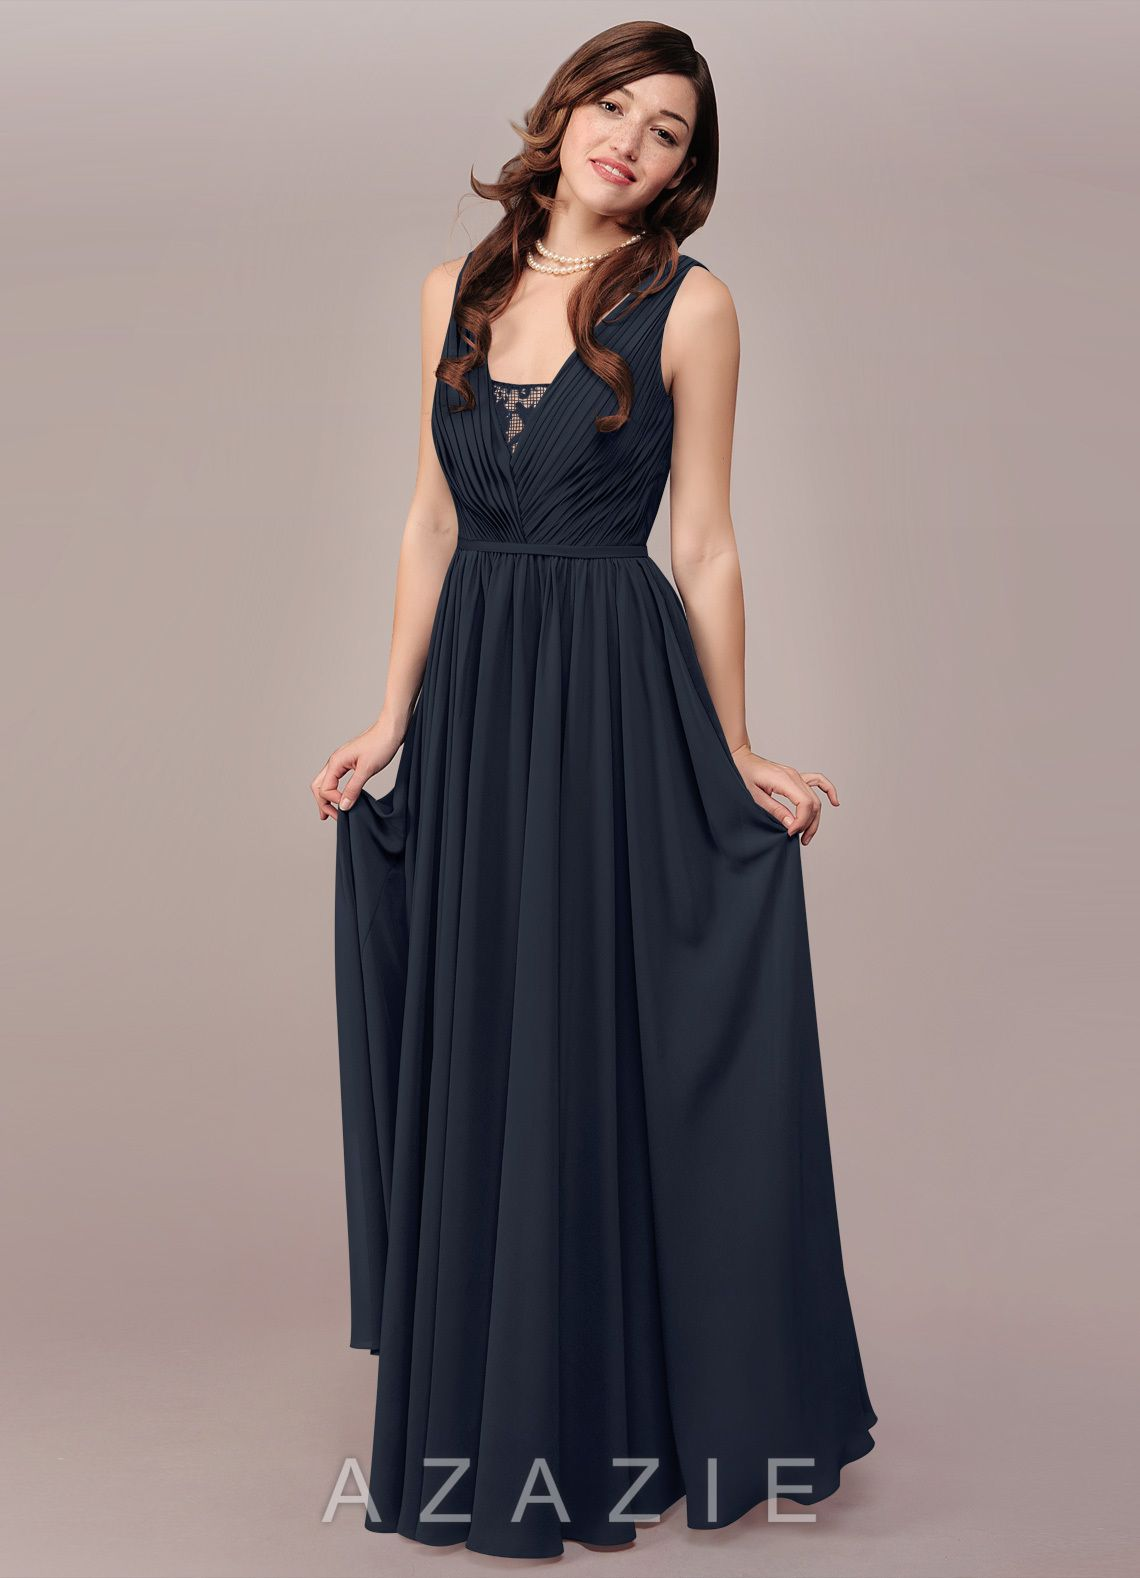 Dress for party wedding  ELLEN  Bridesmaid Dress  Bridal parties Wedding things and Weddings